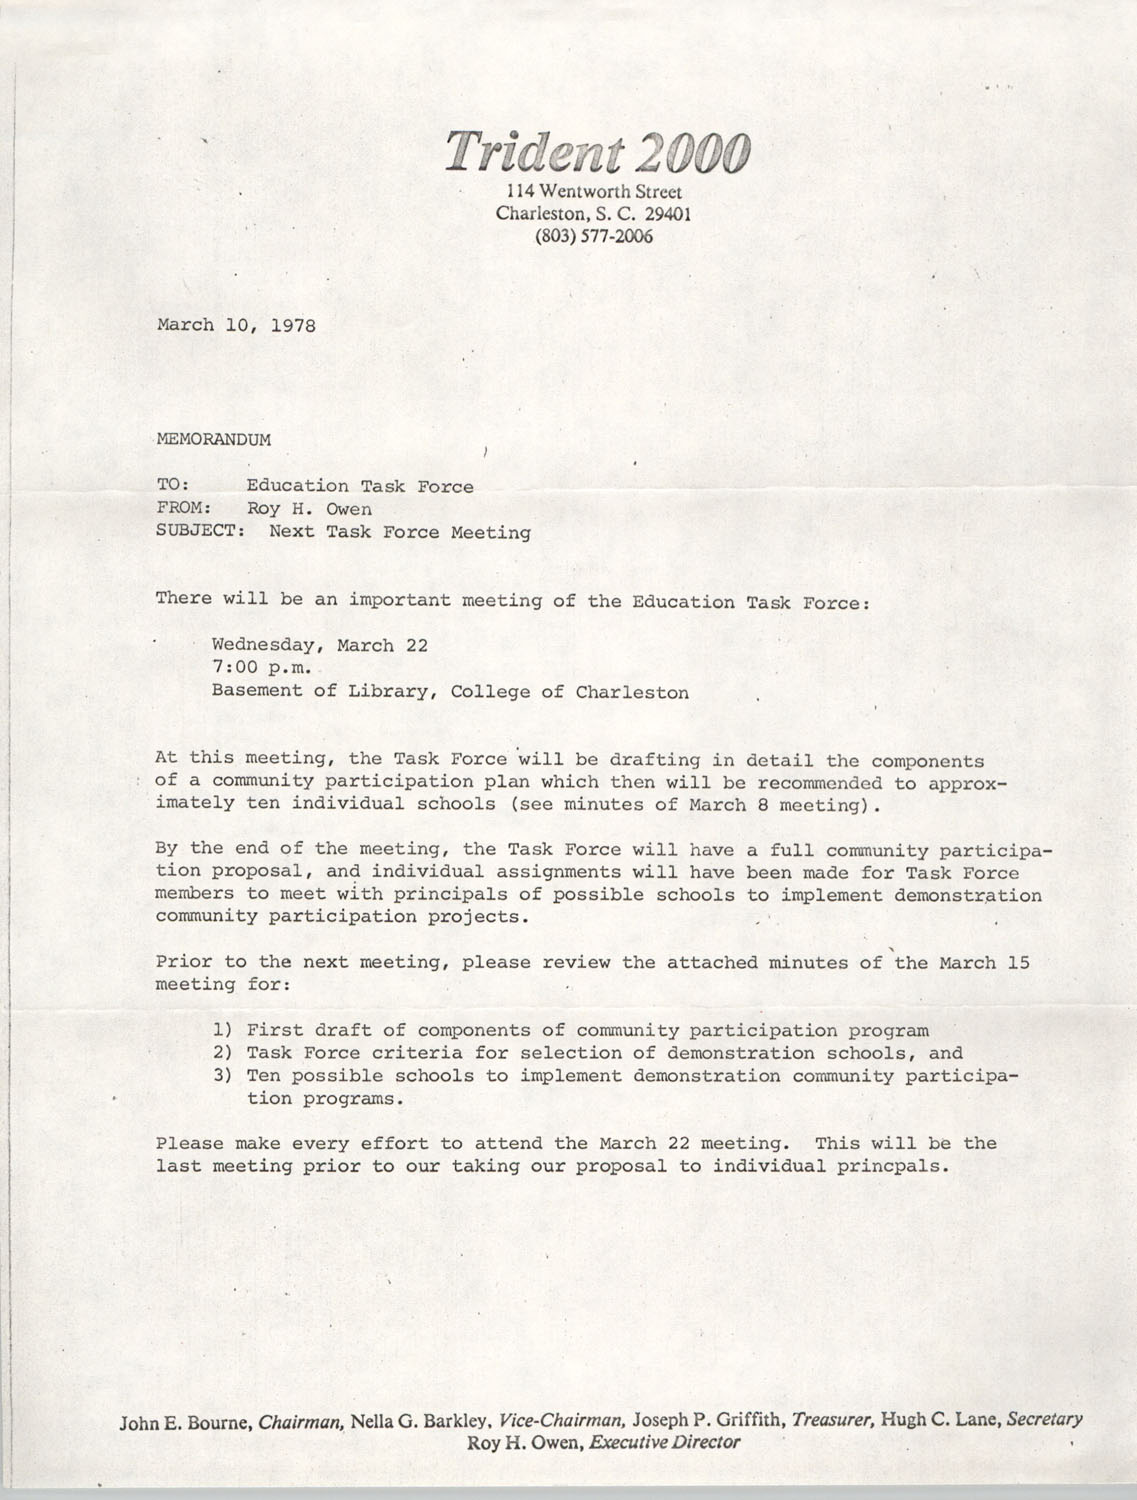 Trident Task Force Memorandum, March 10, 1978